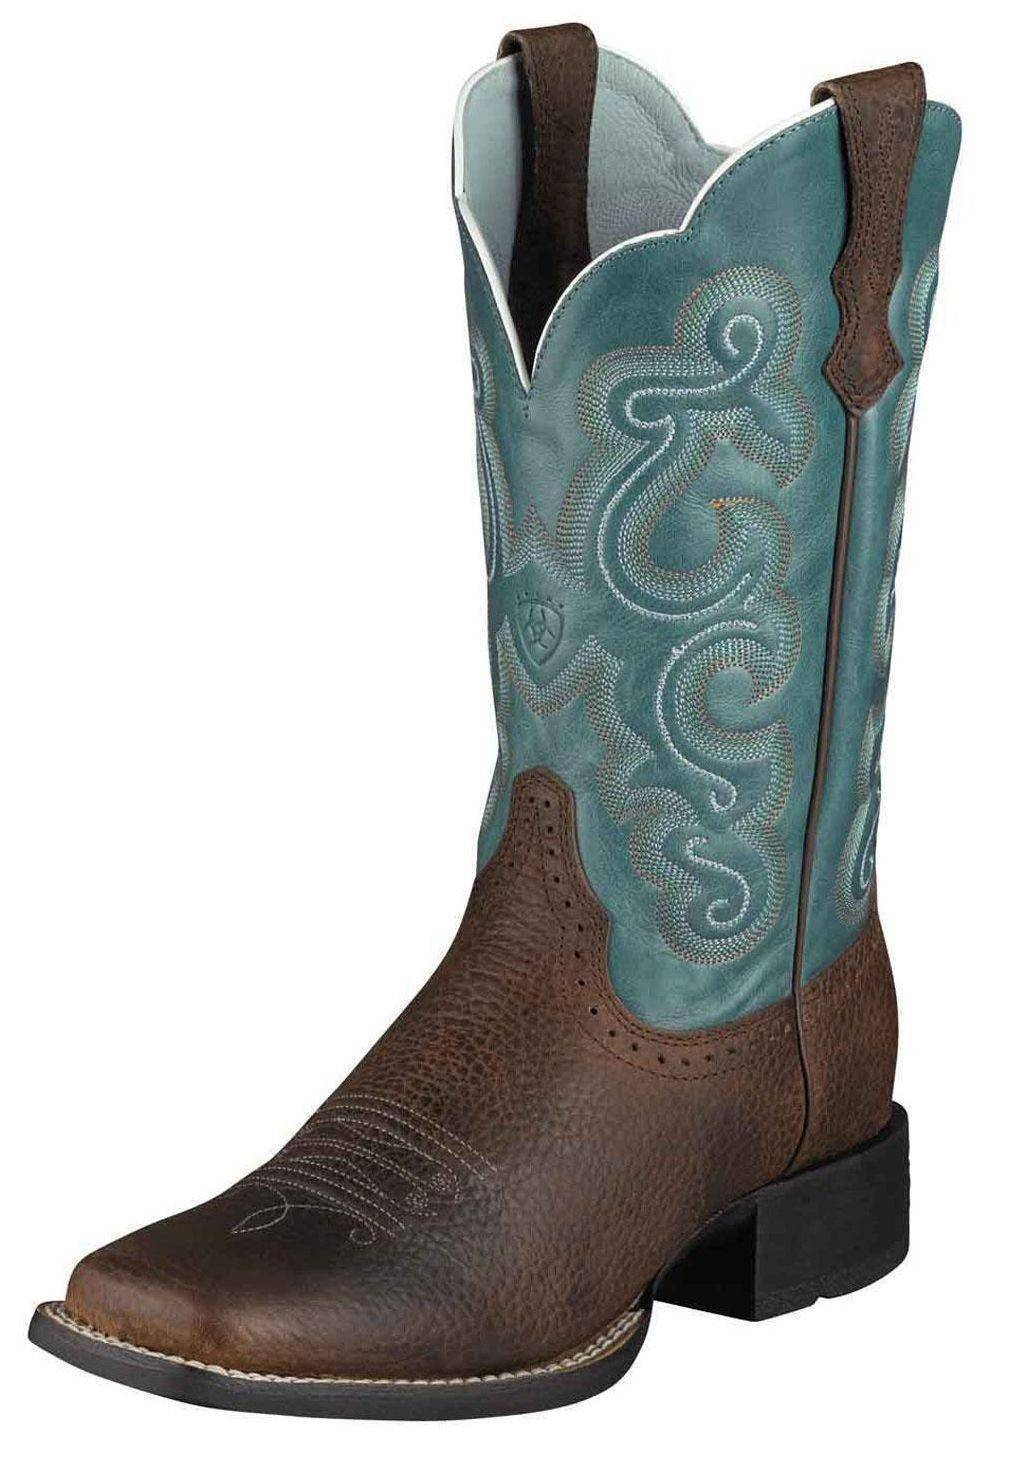 Ariat Women's Quickdraw bluee Fancy Stitched Cowgirl Boot Square Toe - 10004720